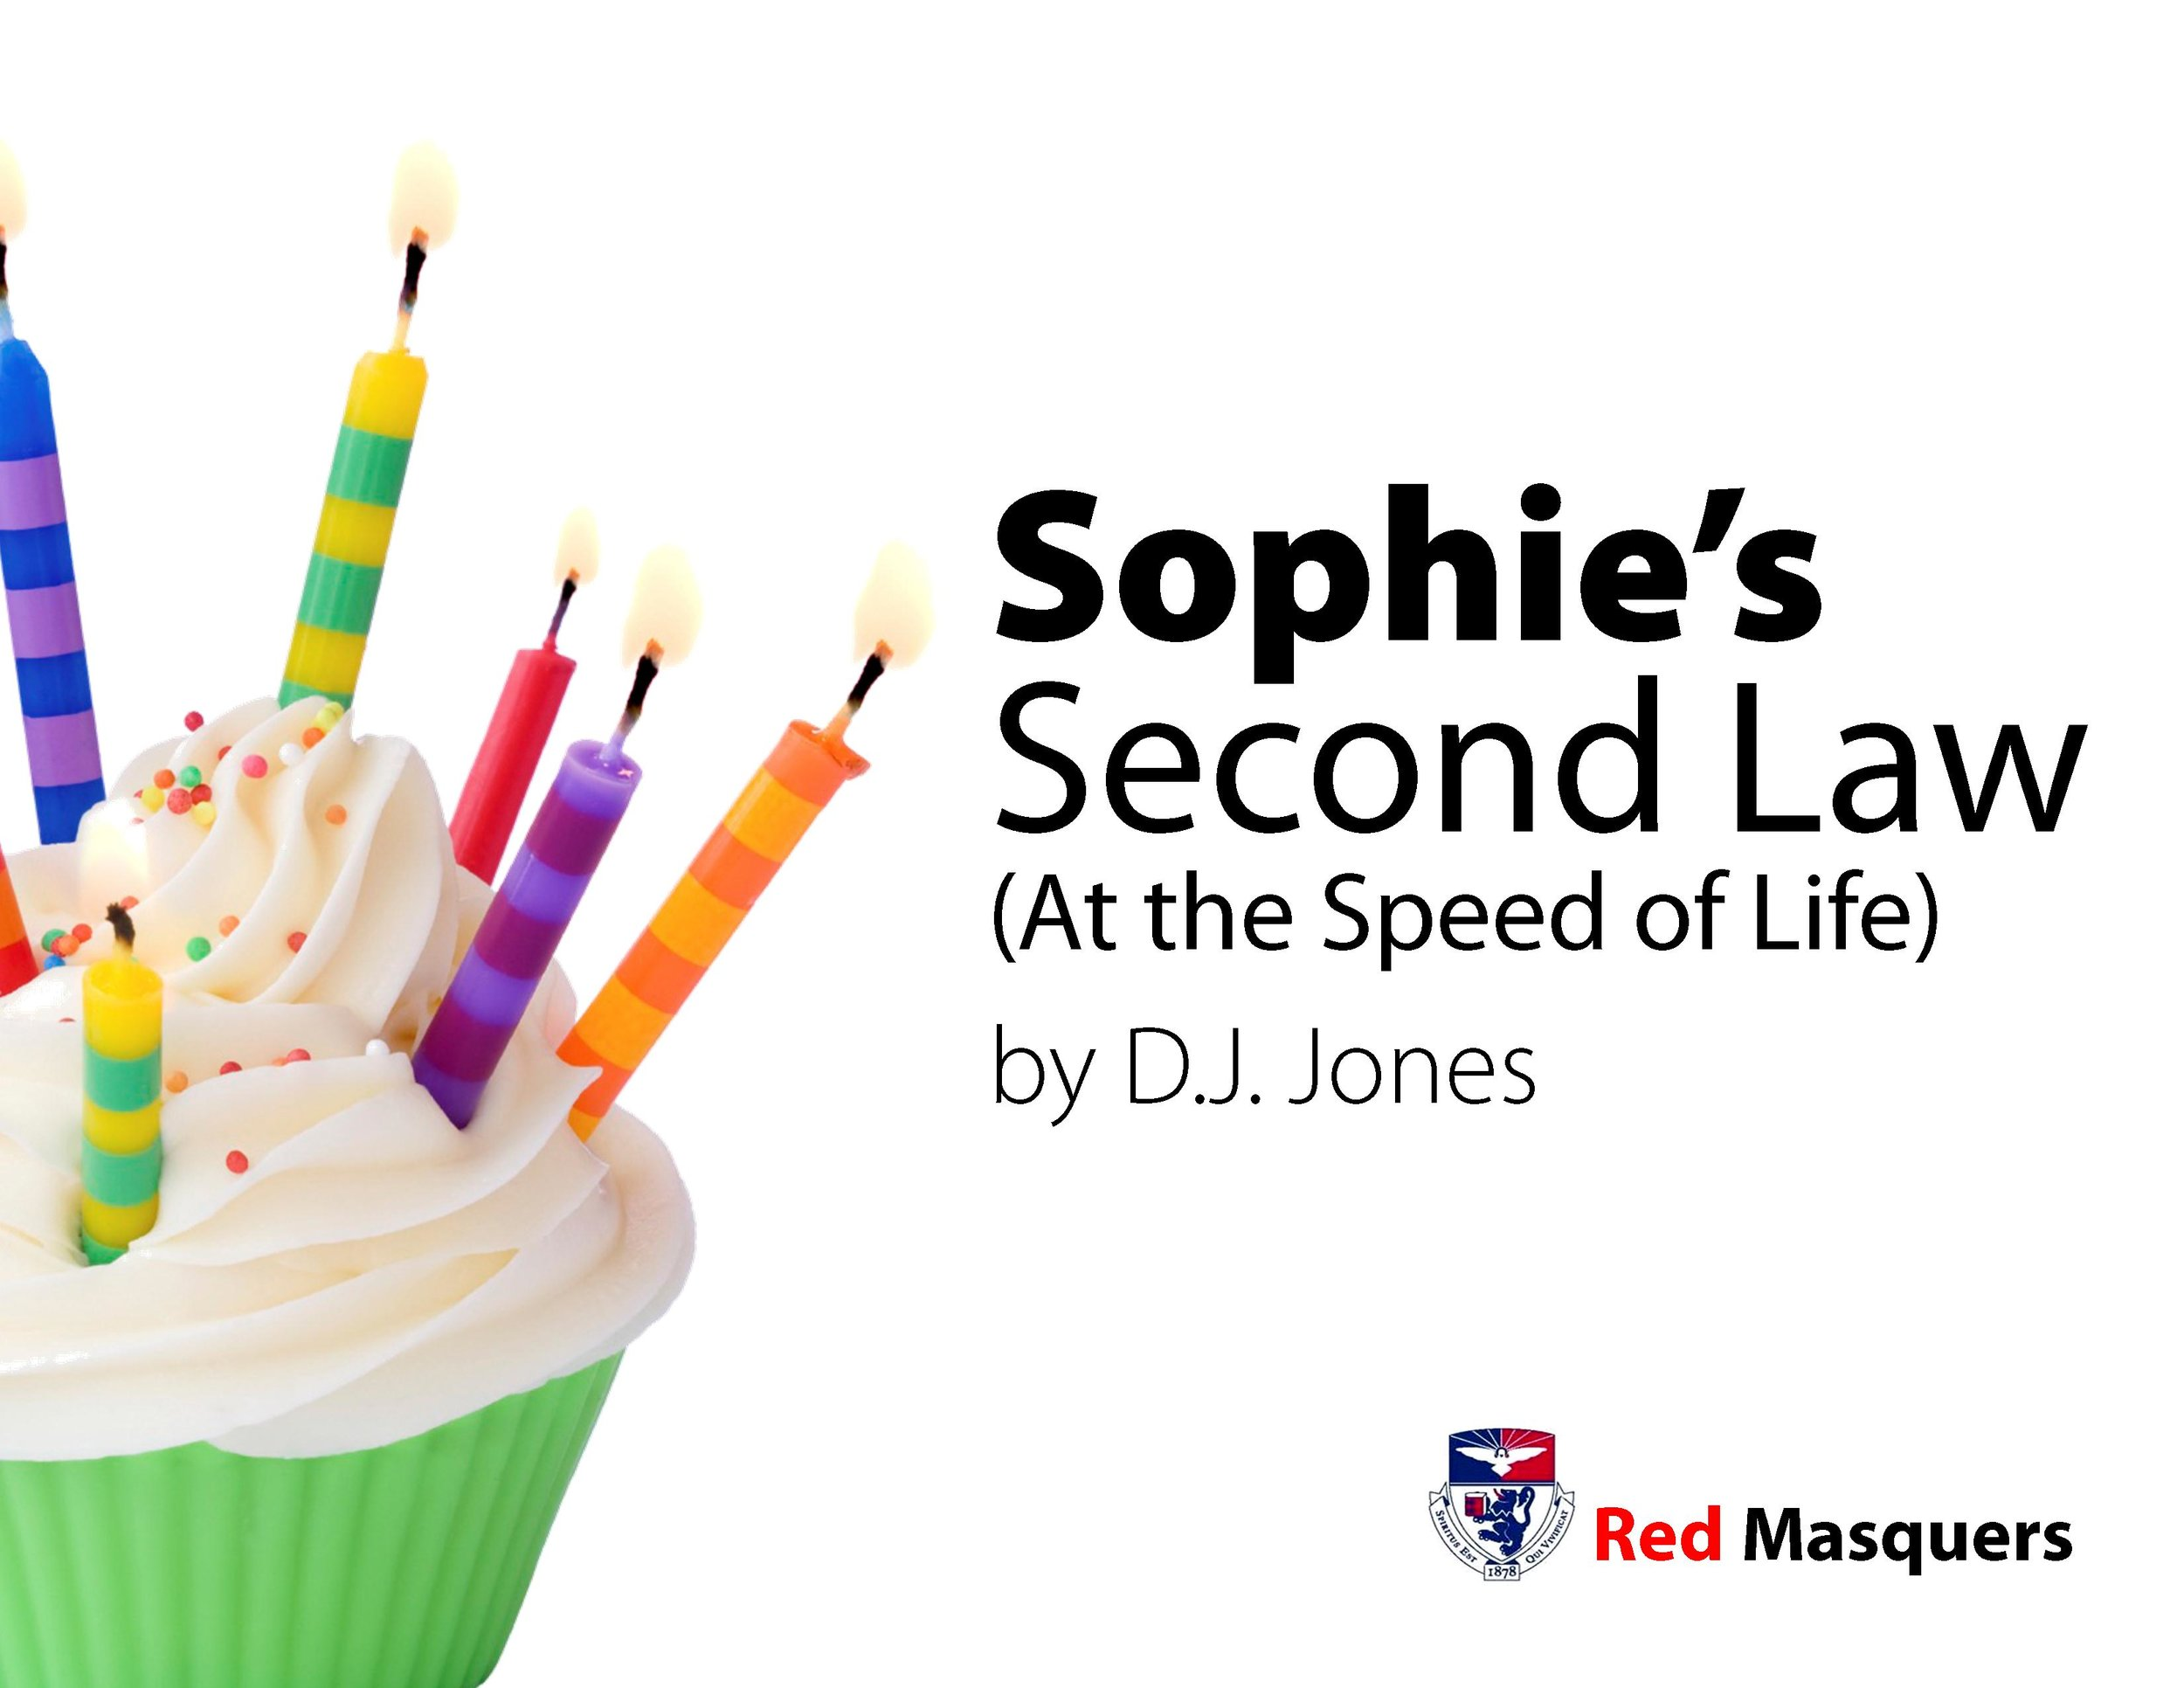 Sophie's Second Law Poster.jpg